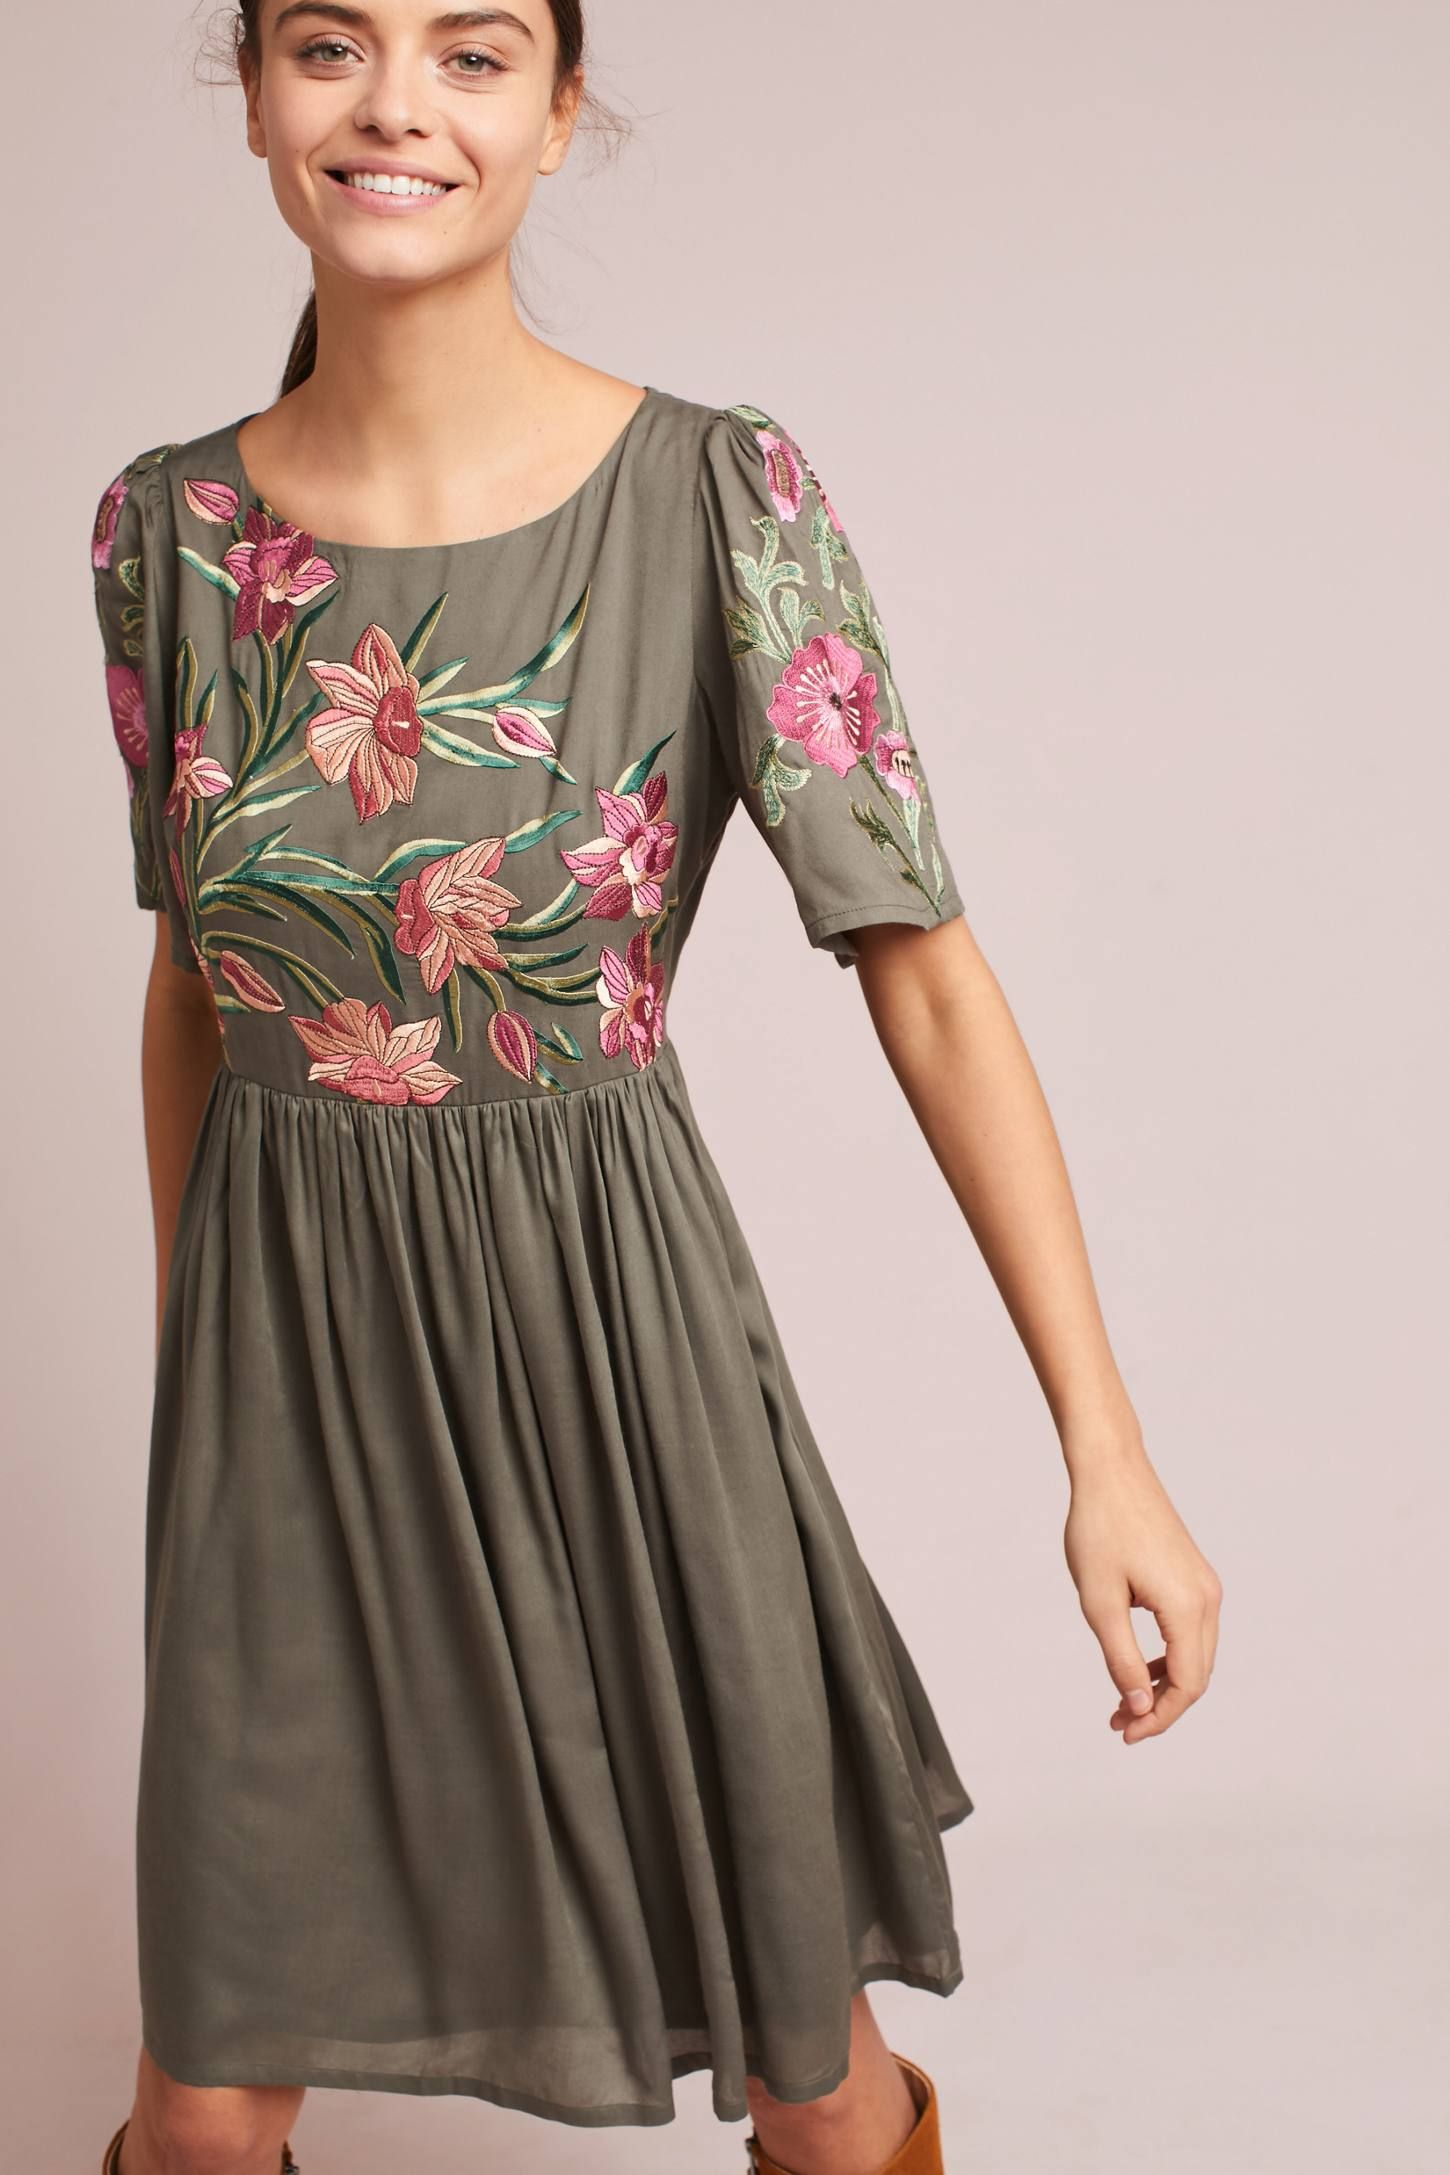 72de8ab27b200 Shop the Aika Embroidered Dress and more Anthropologie at Anthropologie  today. Read customer reviews, discover product details and more.